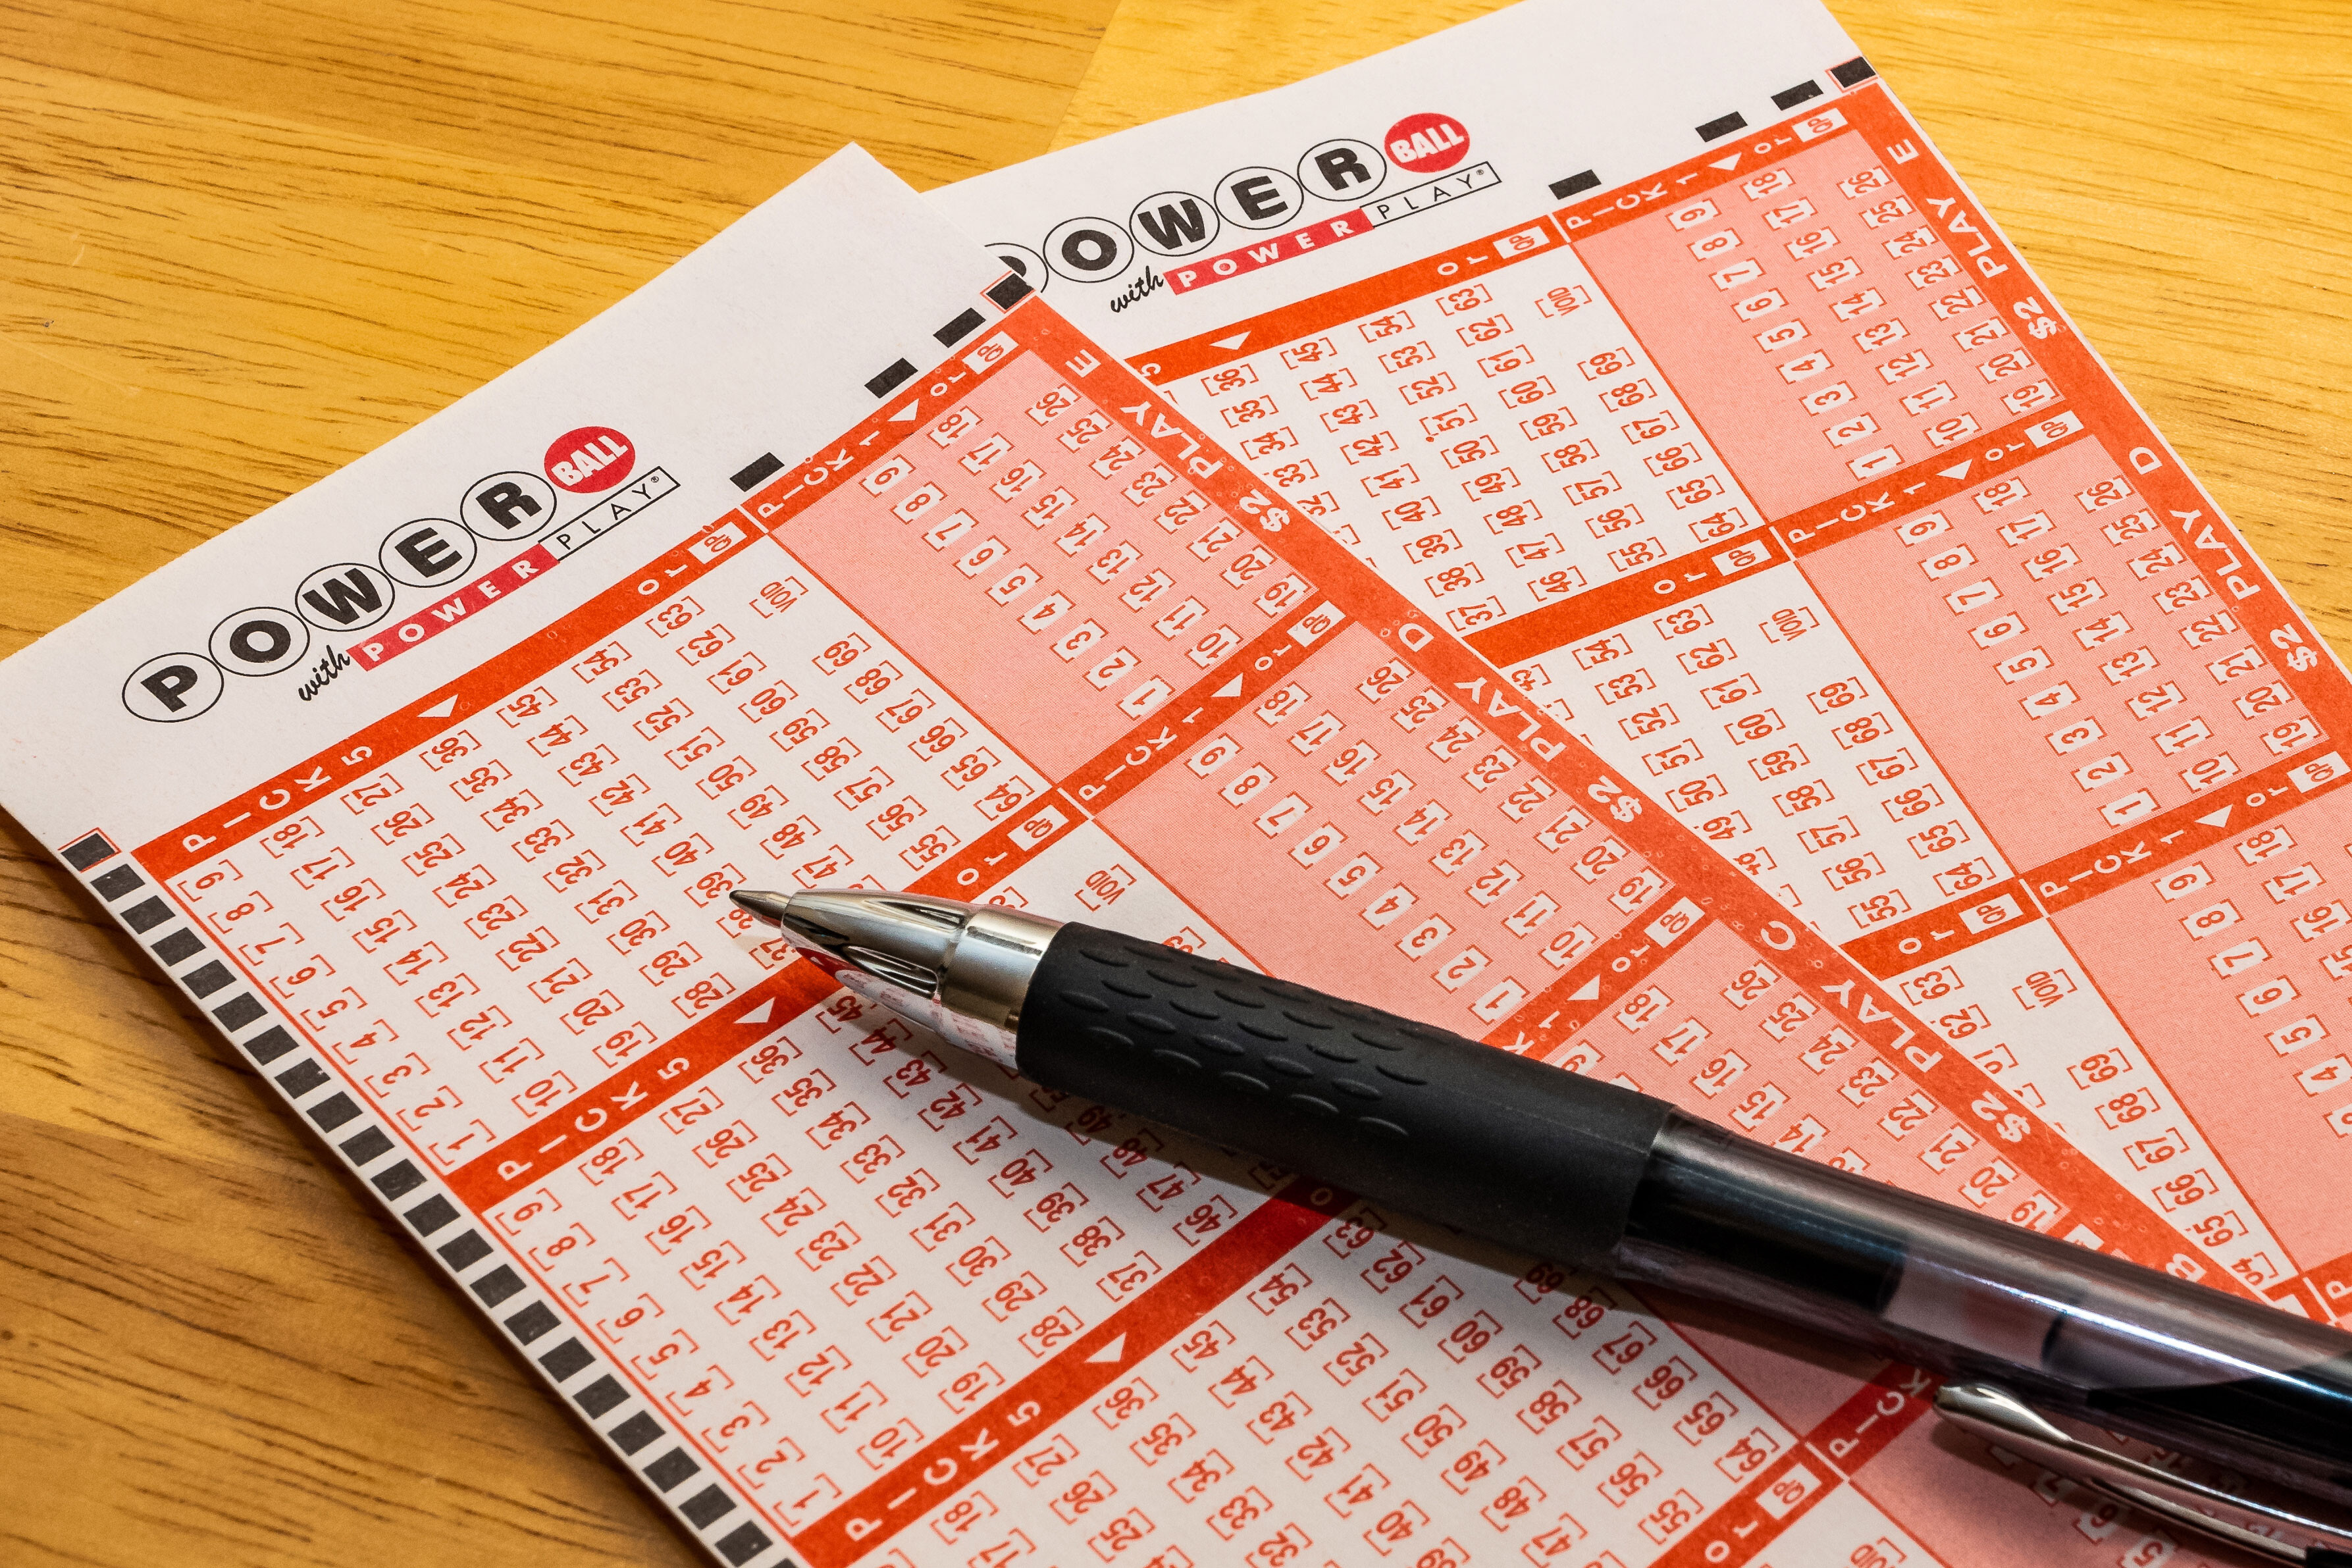 Family returning from vacation stops for a quick bathroom break, buys$2 million winning lottery ticket